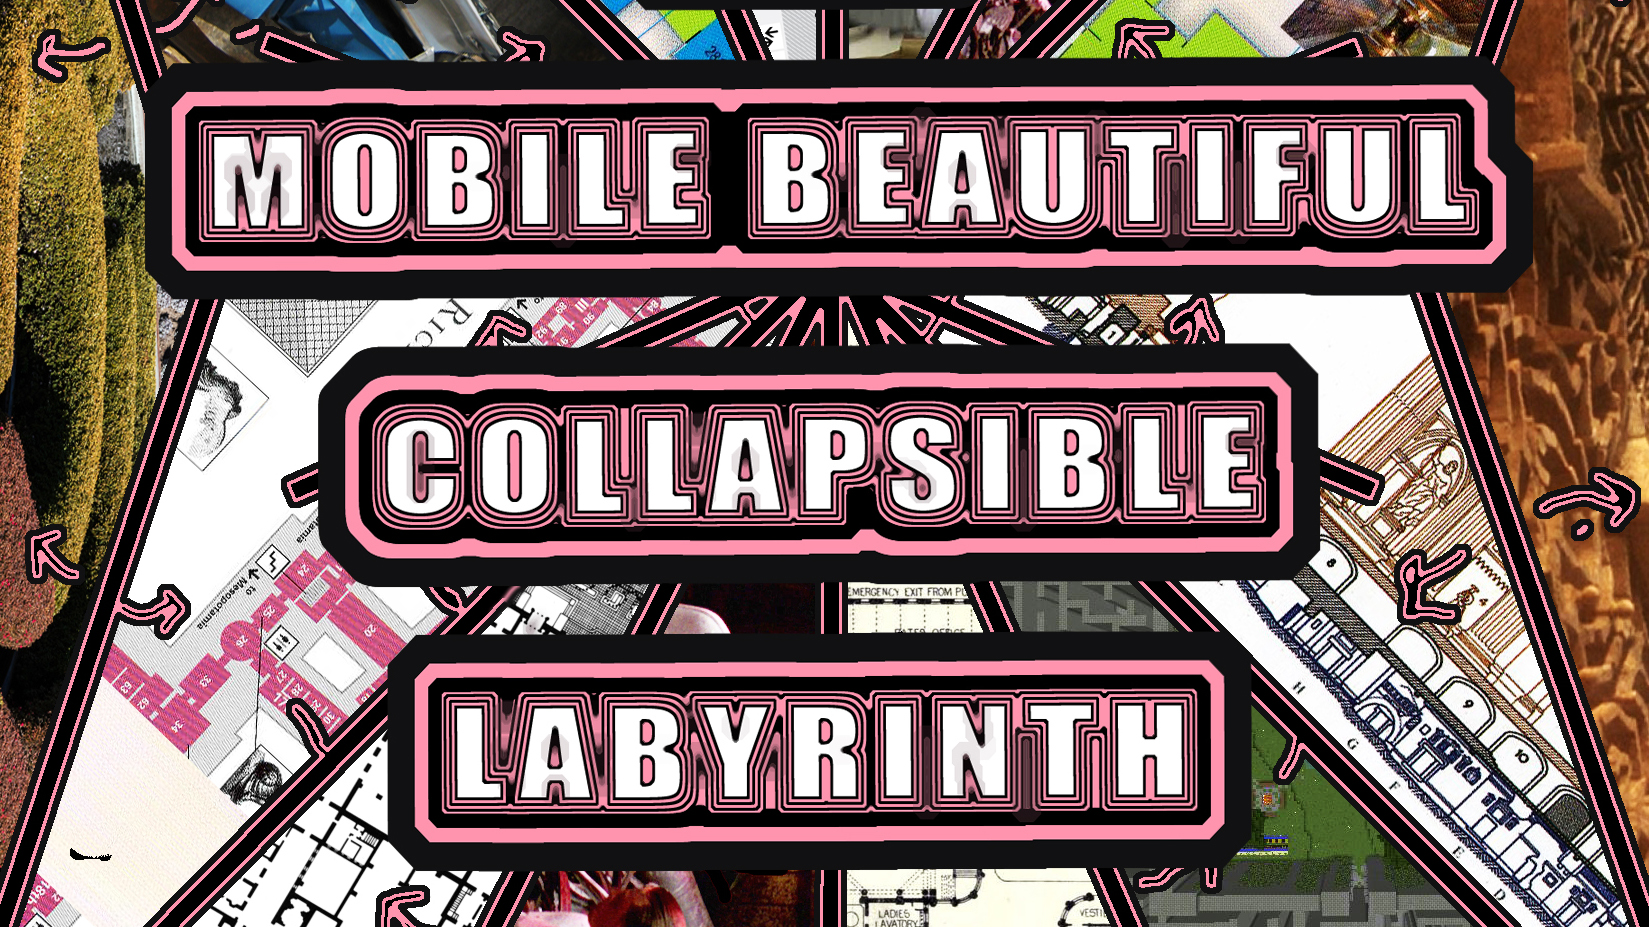 Major Exhibition : The Endless And Mobile Beautiful Collapsible Labyrinth